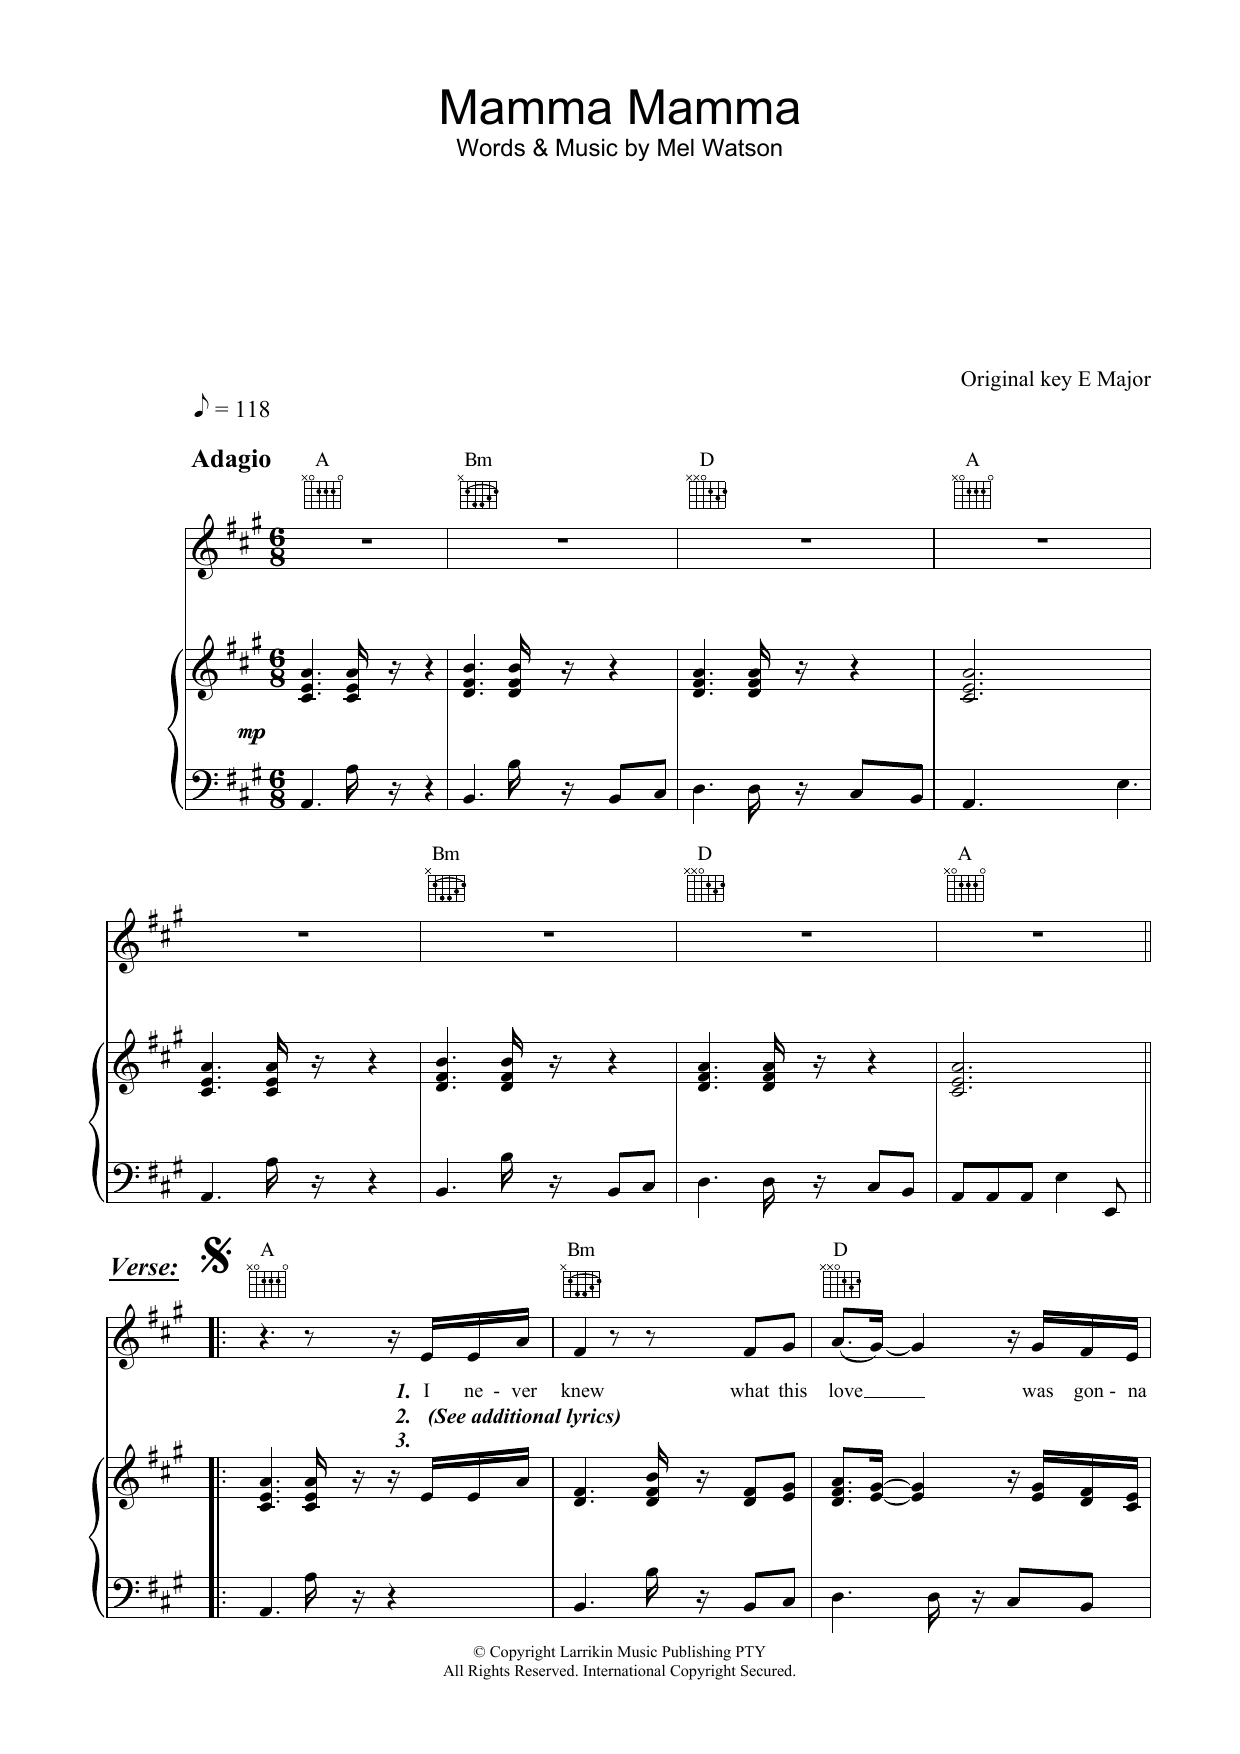 Fruit Mamma Mamma sheet music preview music notes and score for Piano, Vocal & Guitar (Right-Hand Melody) including 6 page(s)